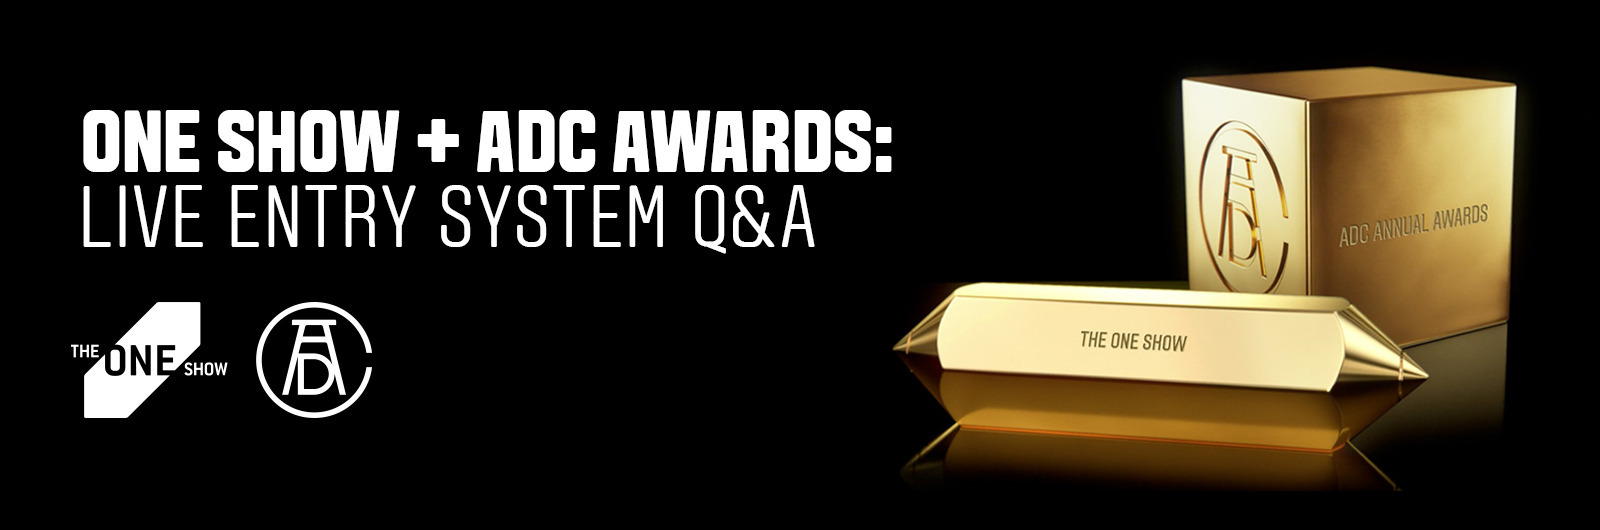 One Show + ADC Awards: Live Entry System Q&A